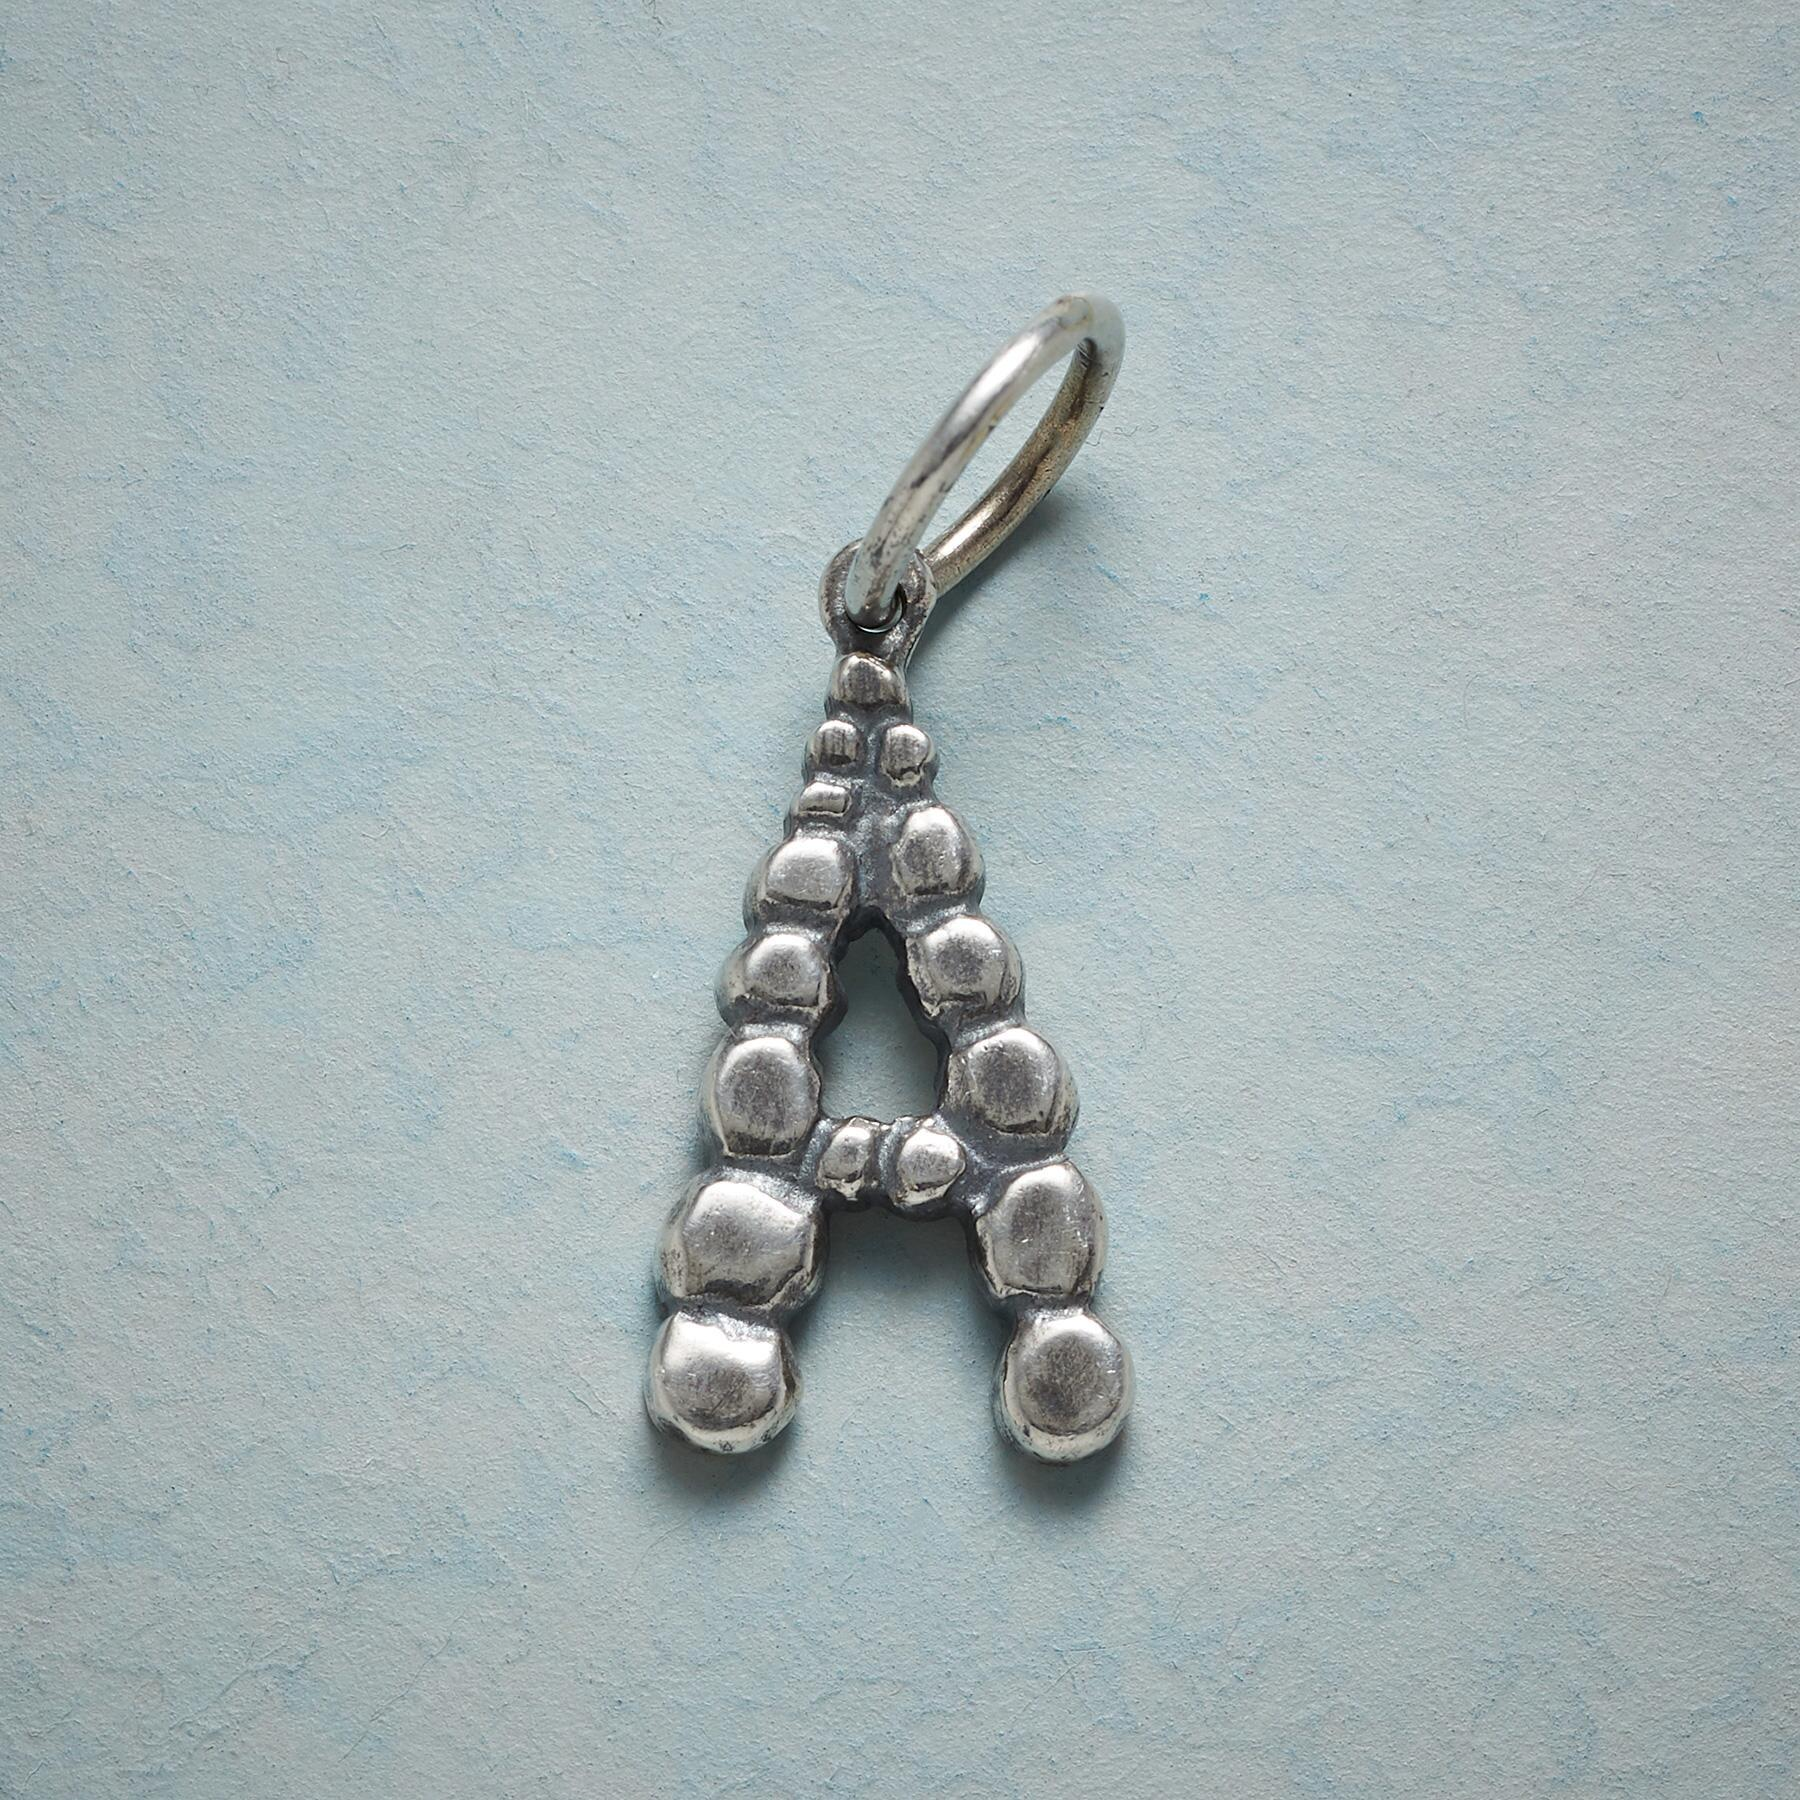 STERLING SILVER CONNECT THE DOTS LETTER CHARM: View 1